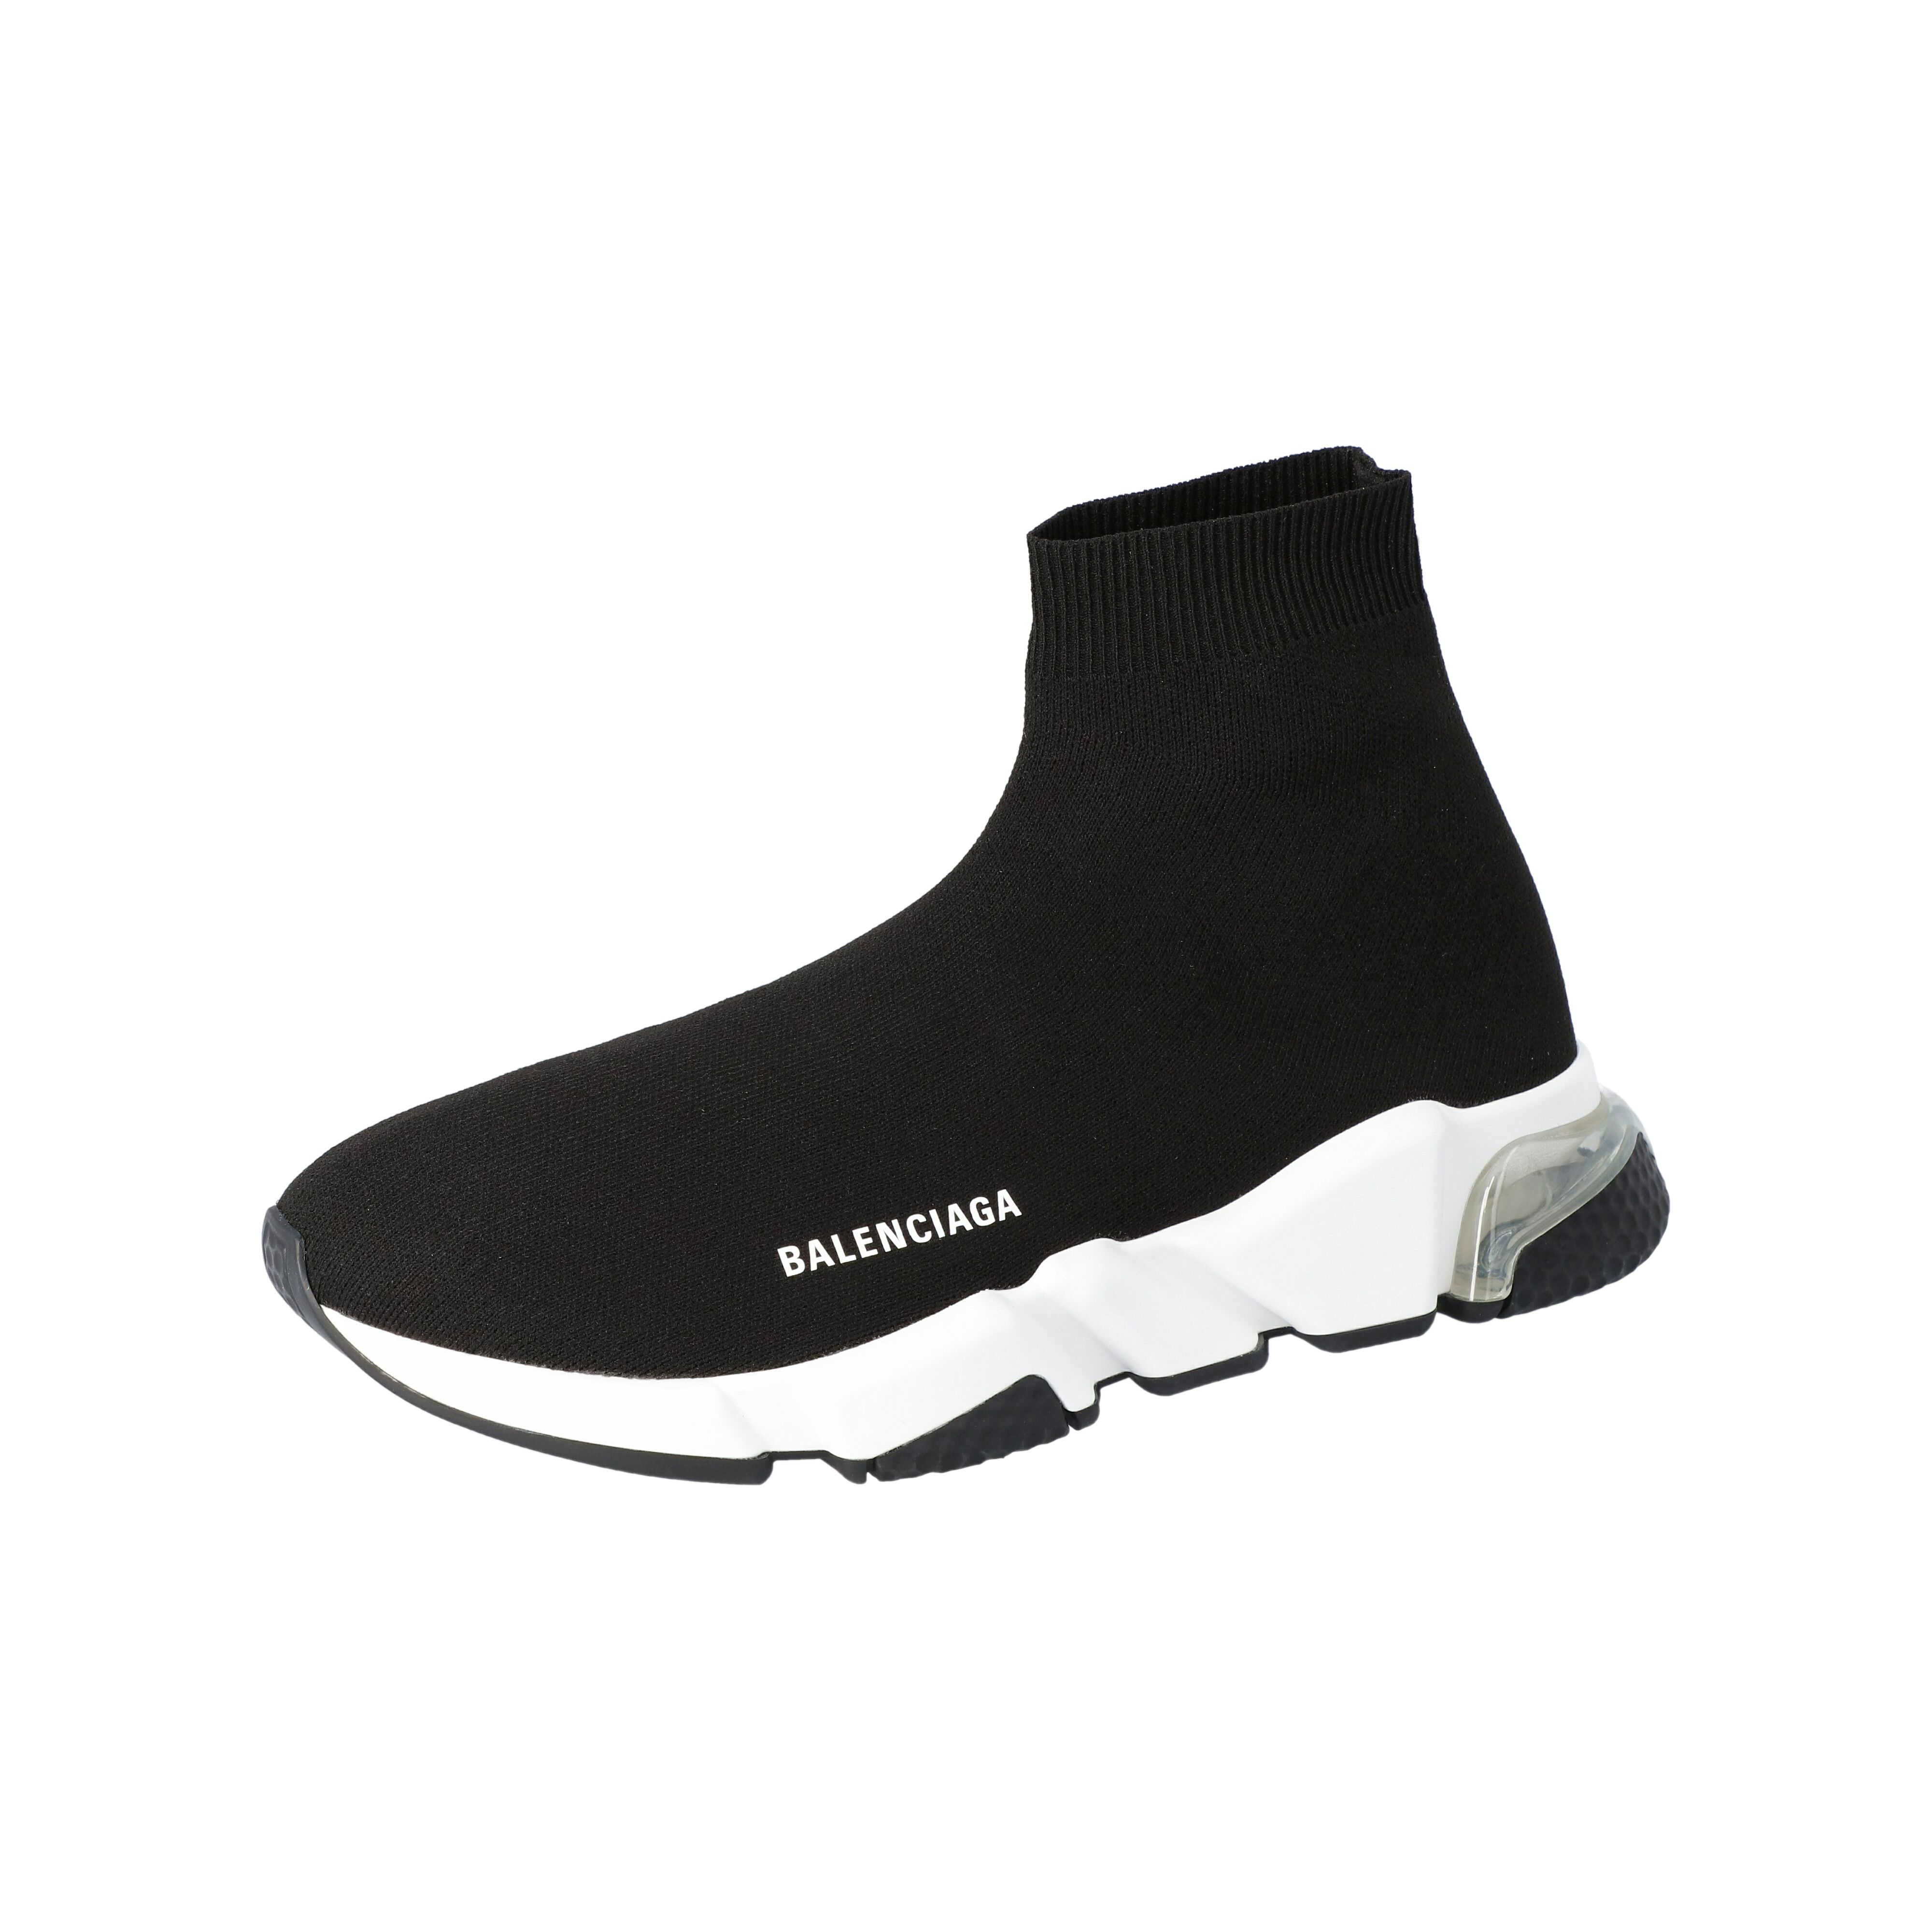 Balenciaga Black Knit Speed Clear Sole Sneakers Size 41